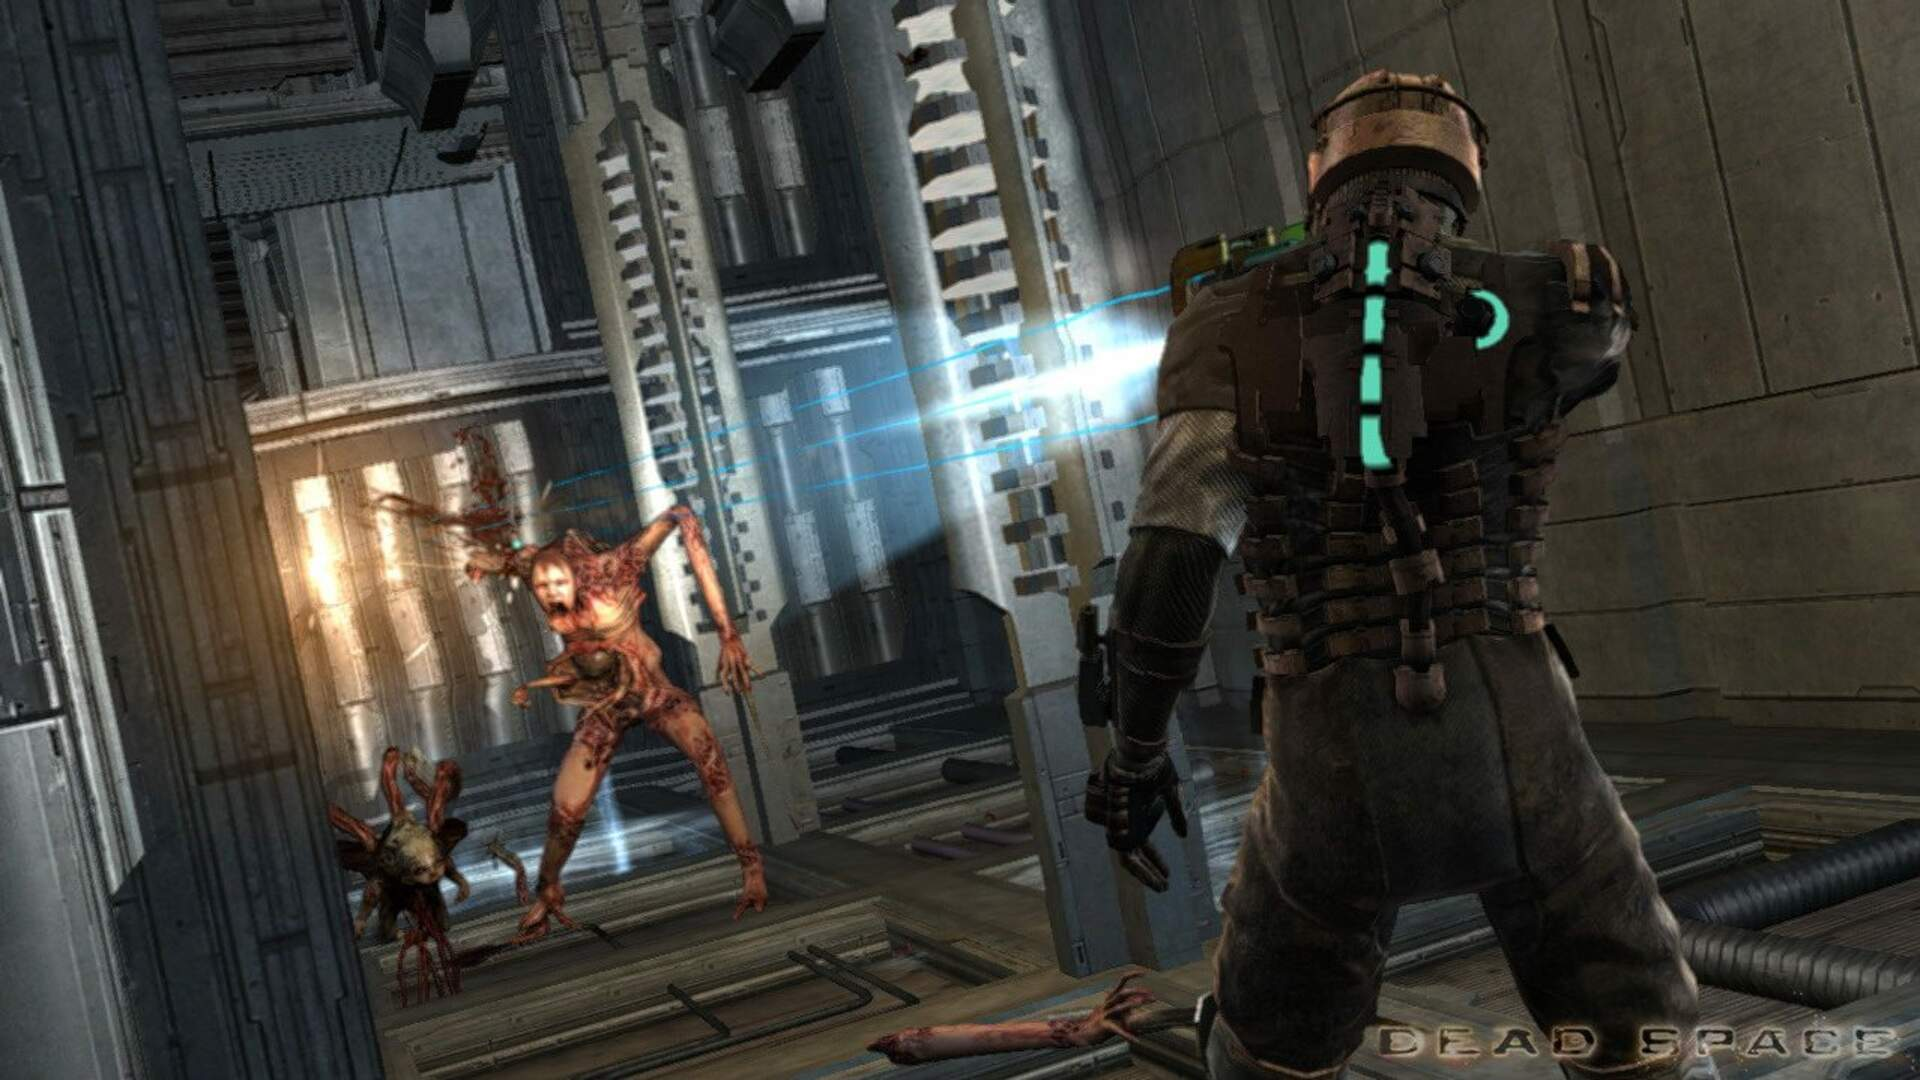 """""""It Scared the Shit Out of Me:"""" Remembering Dead Space With One of its Key Creators"""